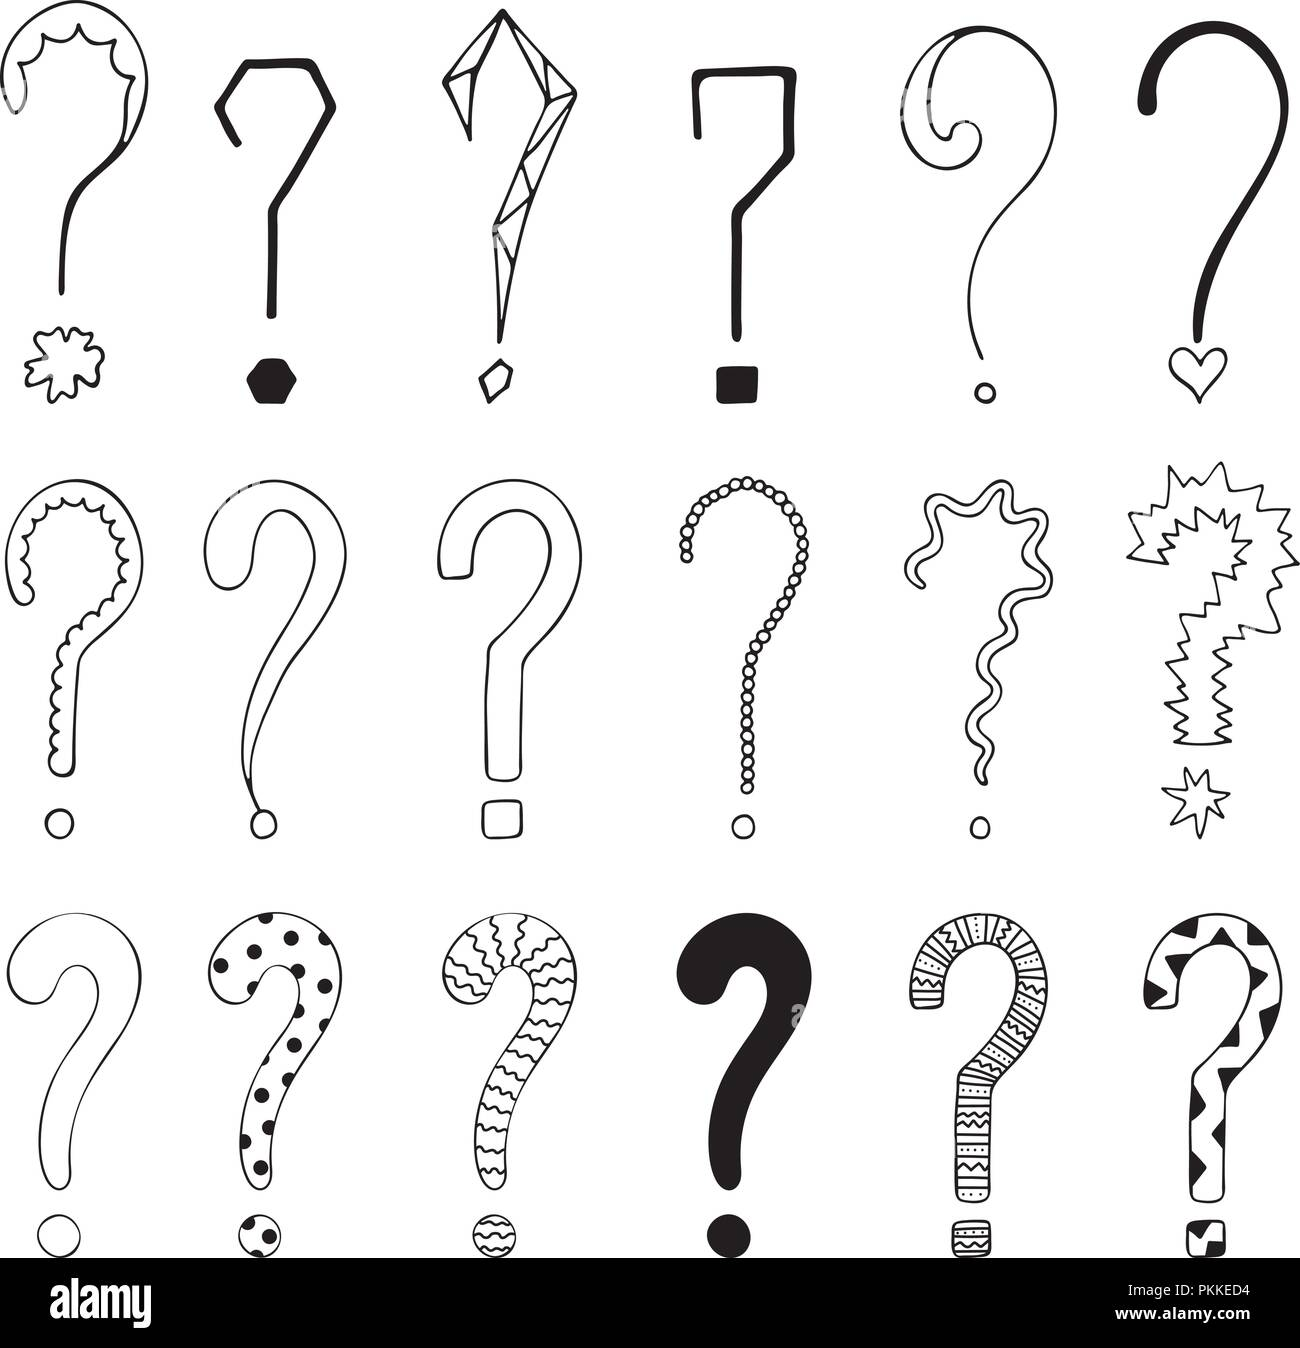 Set of 18 question marks for design. - Stock Image